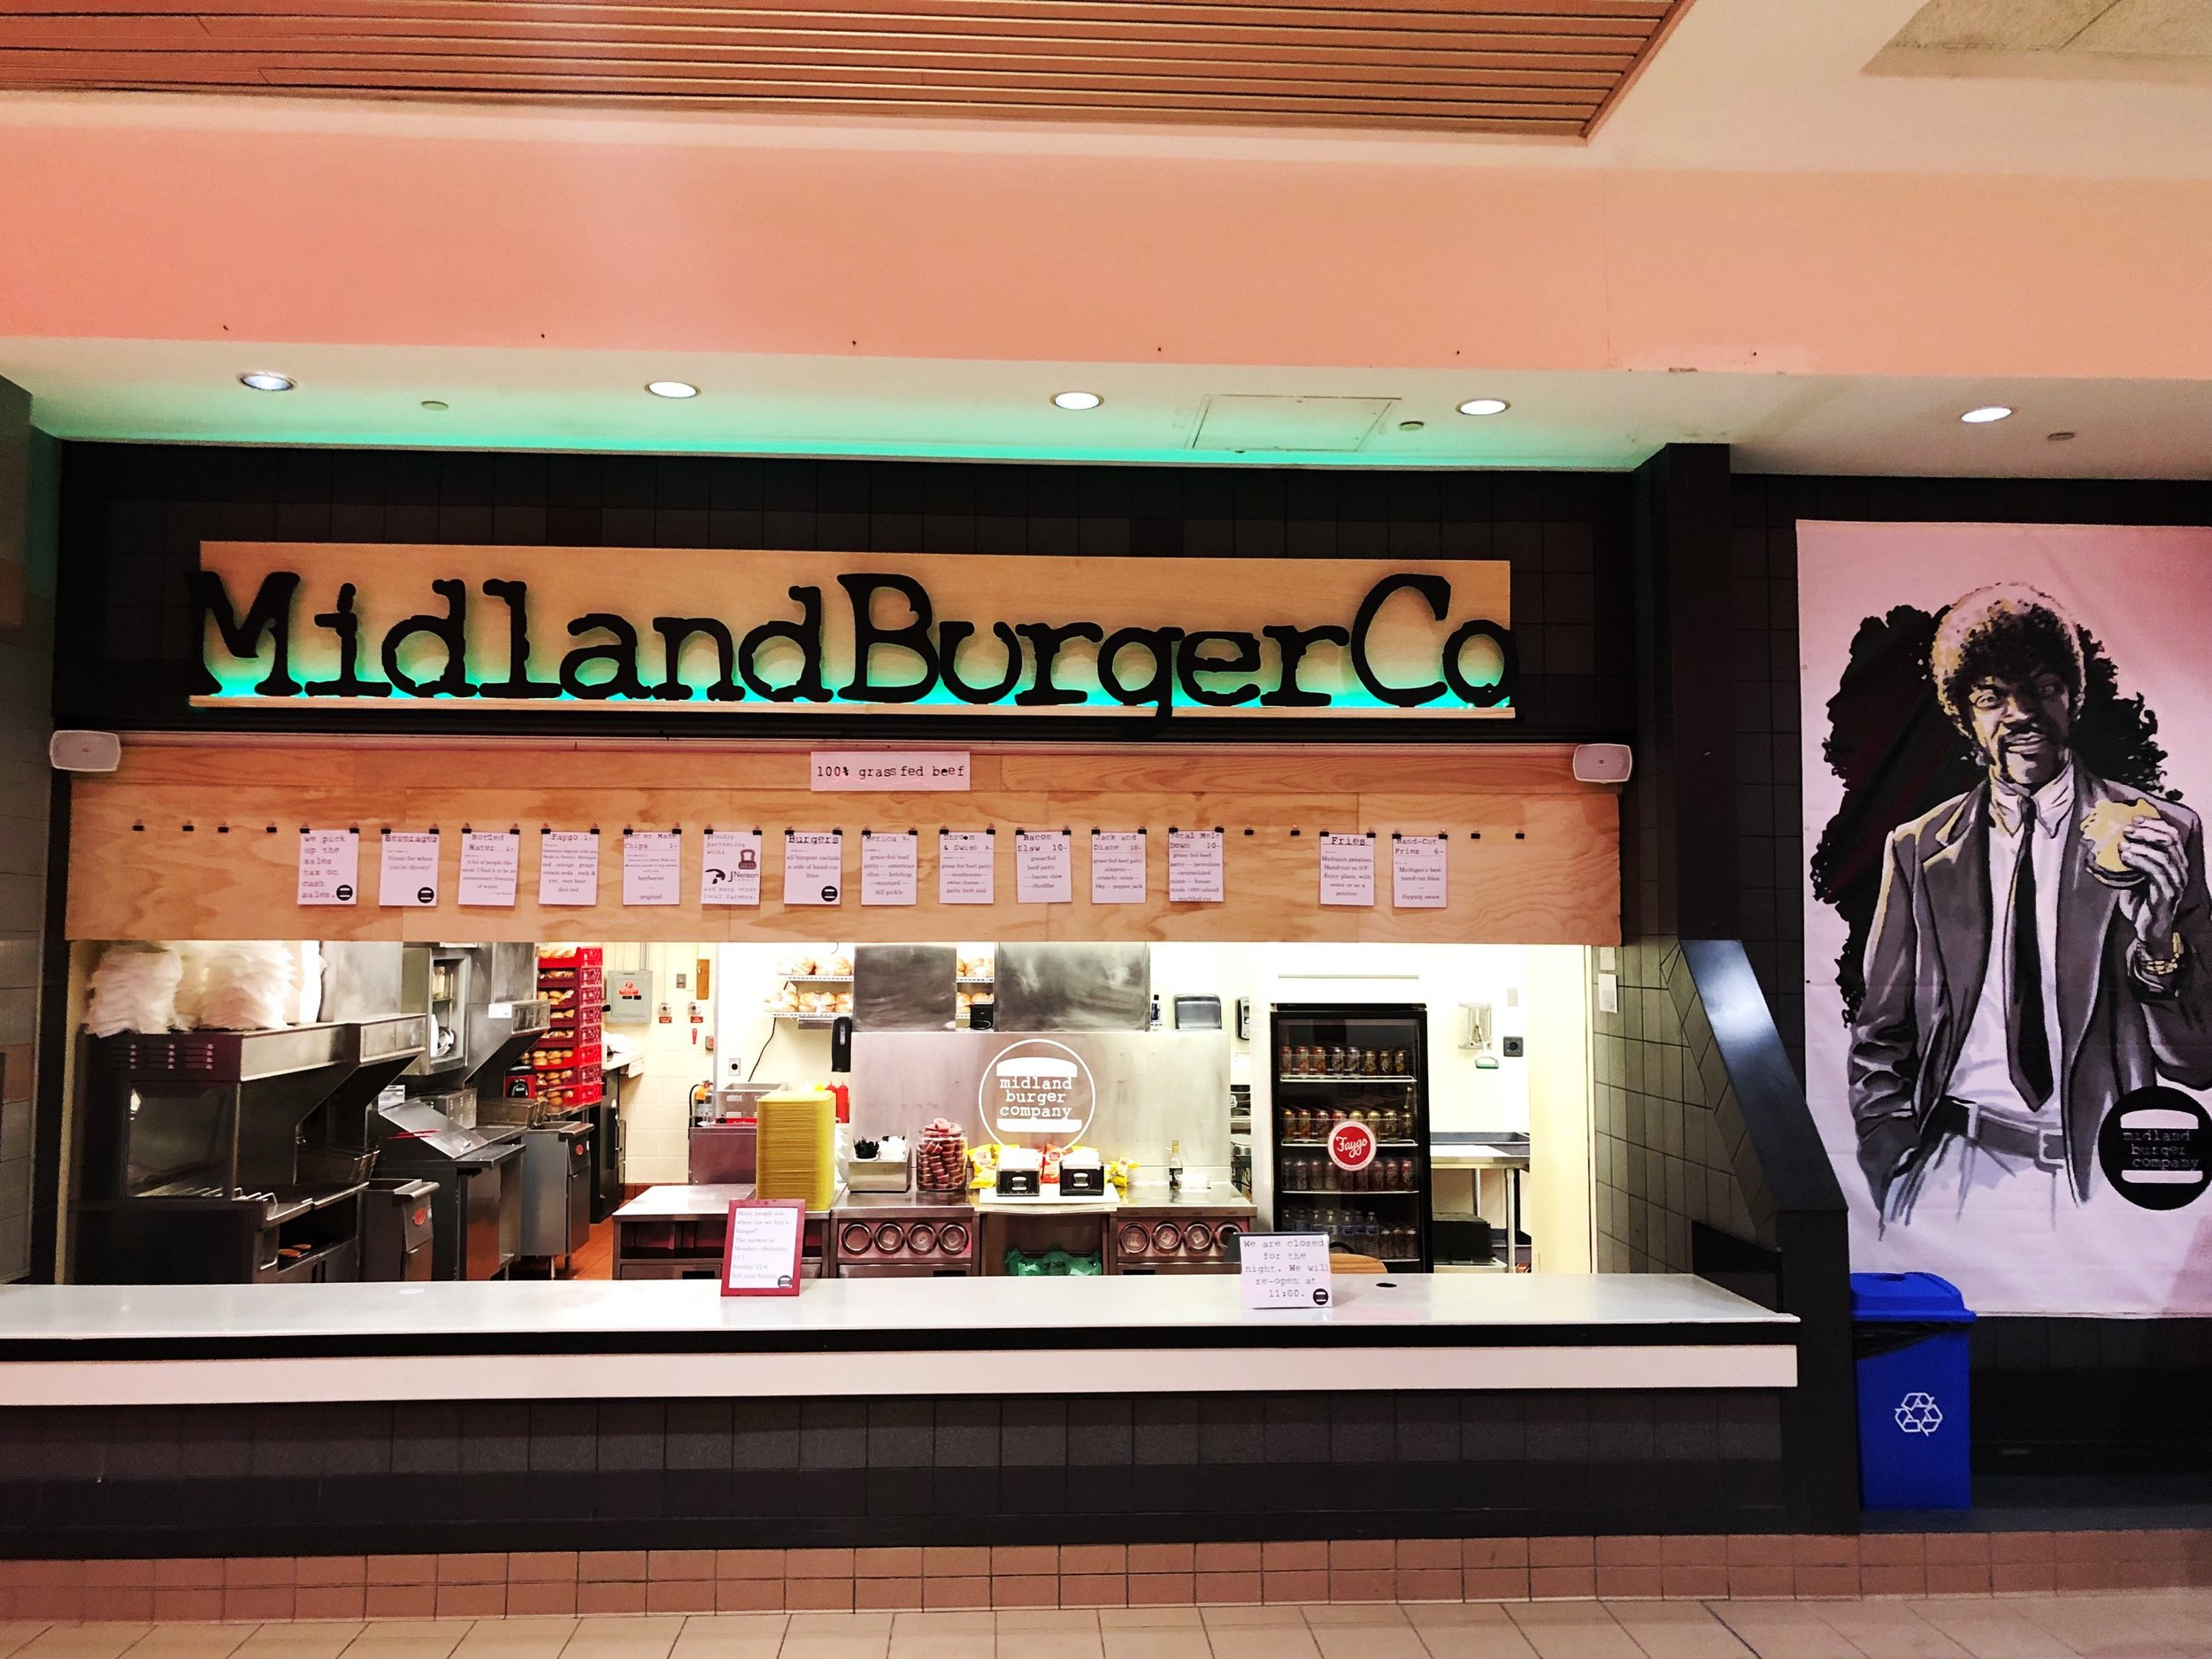 Located in the Midland Mall Food Court